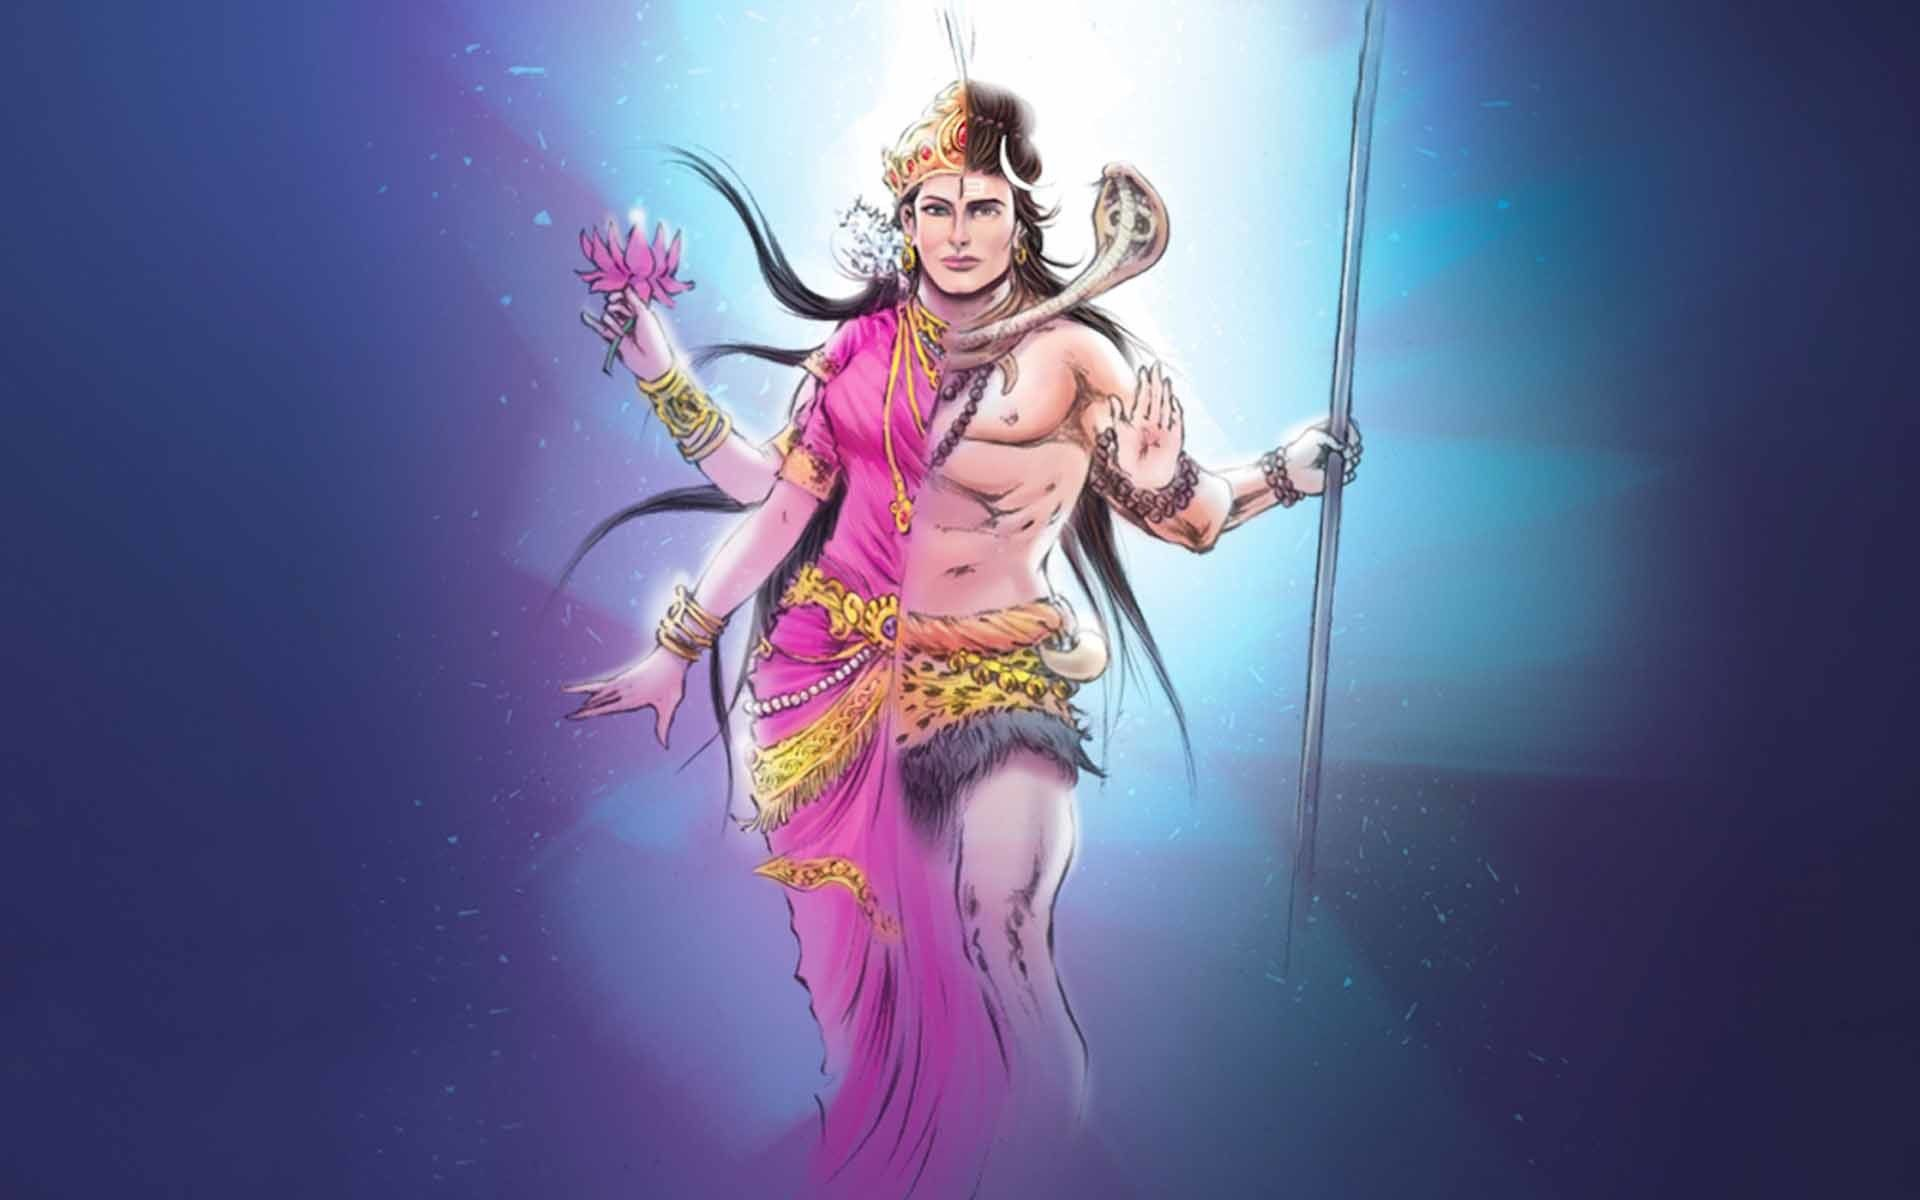 Lord Shiva Wallpapers High Resolution 73 Images Shiva